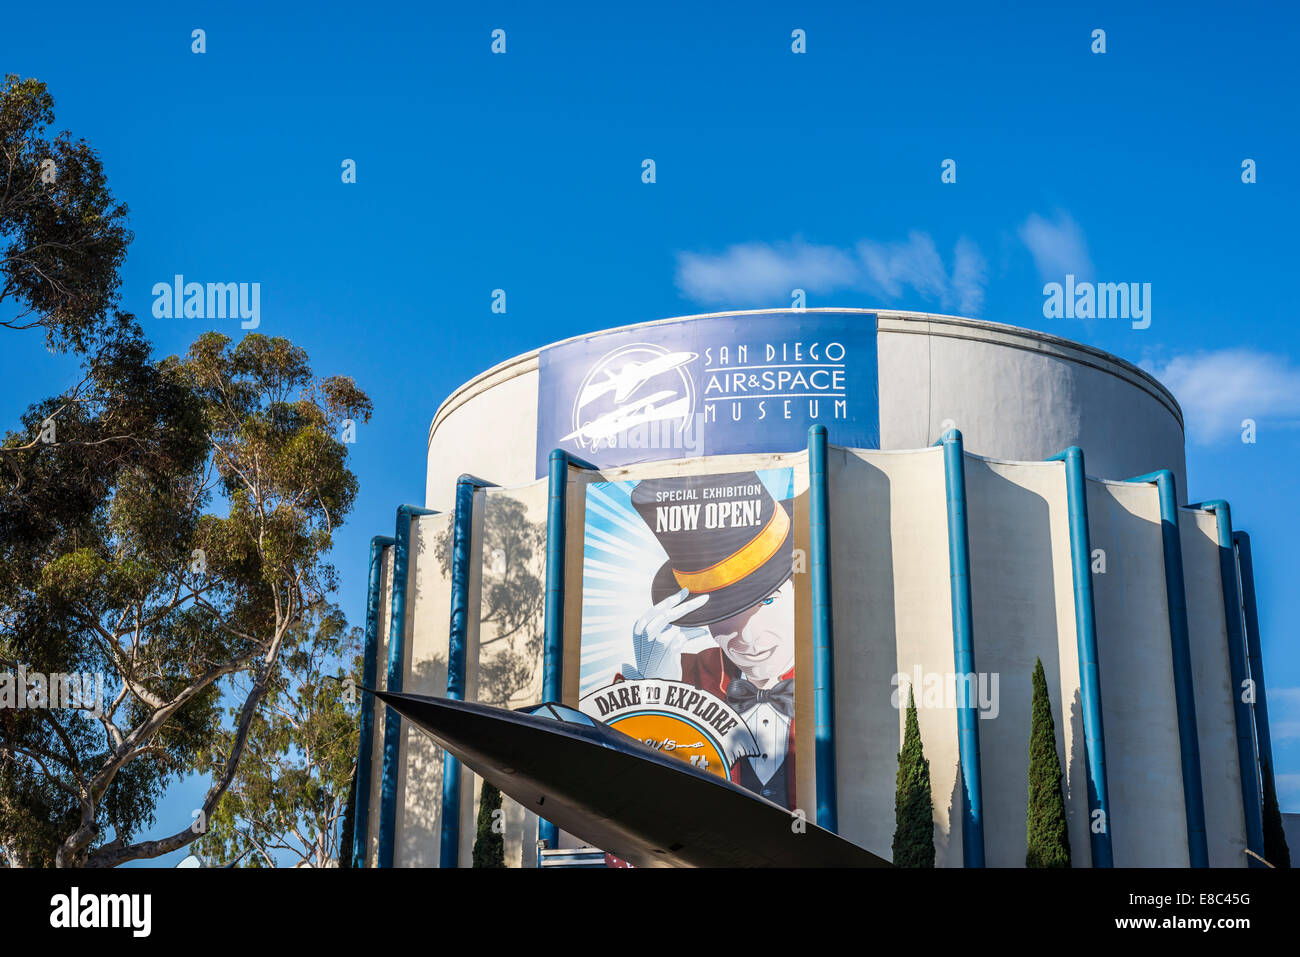 San Diego Air & Space Museum building. Balboa Park, San Diego,California, United States. - Stock Image